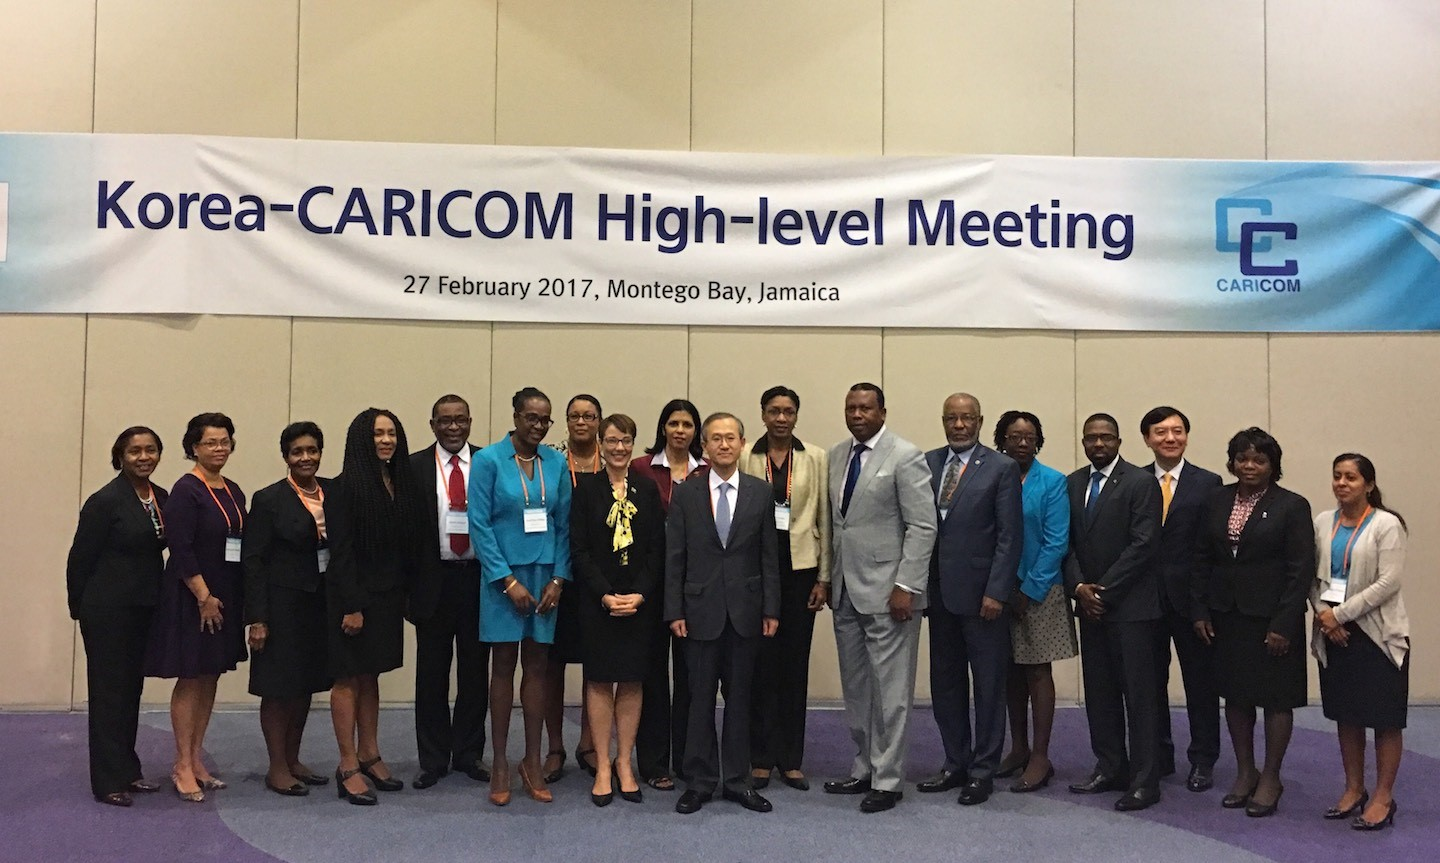 Photo of Joint Statement of the Inaugural High-Level Meeting between the Republic of Korea and the Caribbean Community(CARICOM)